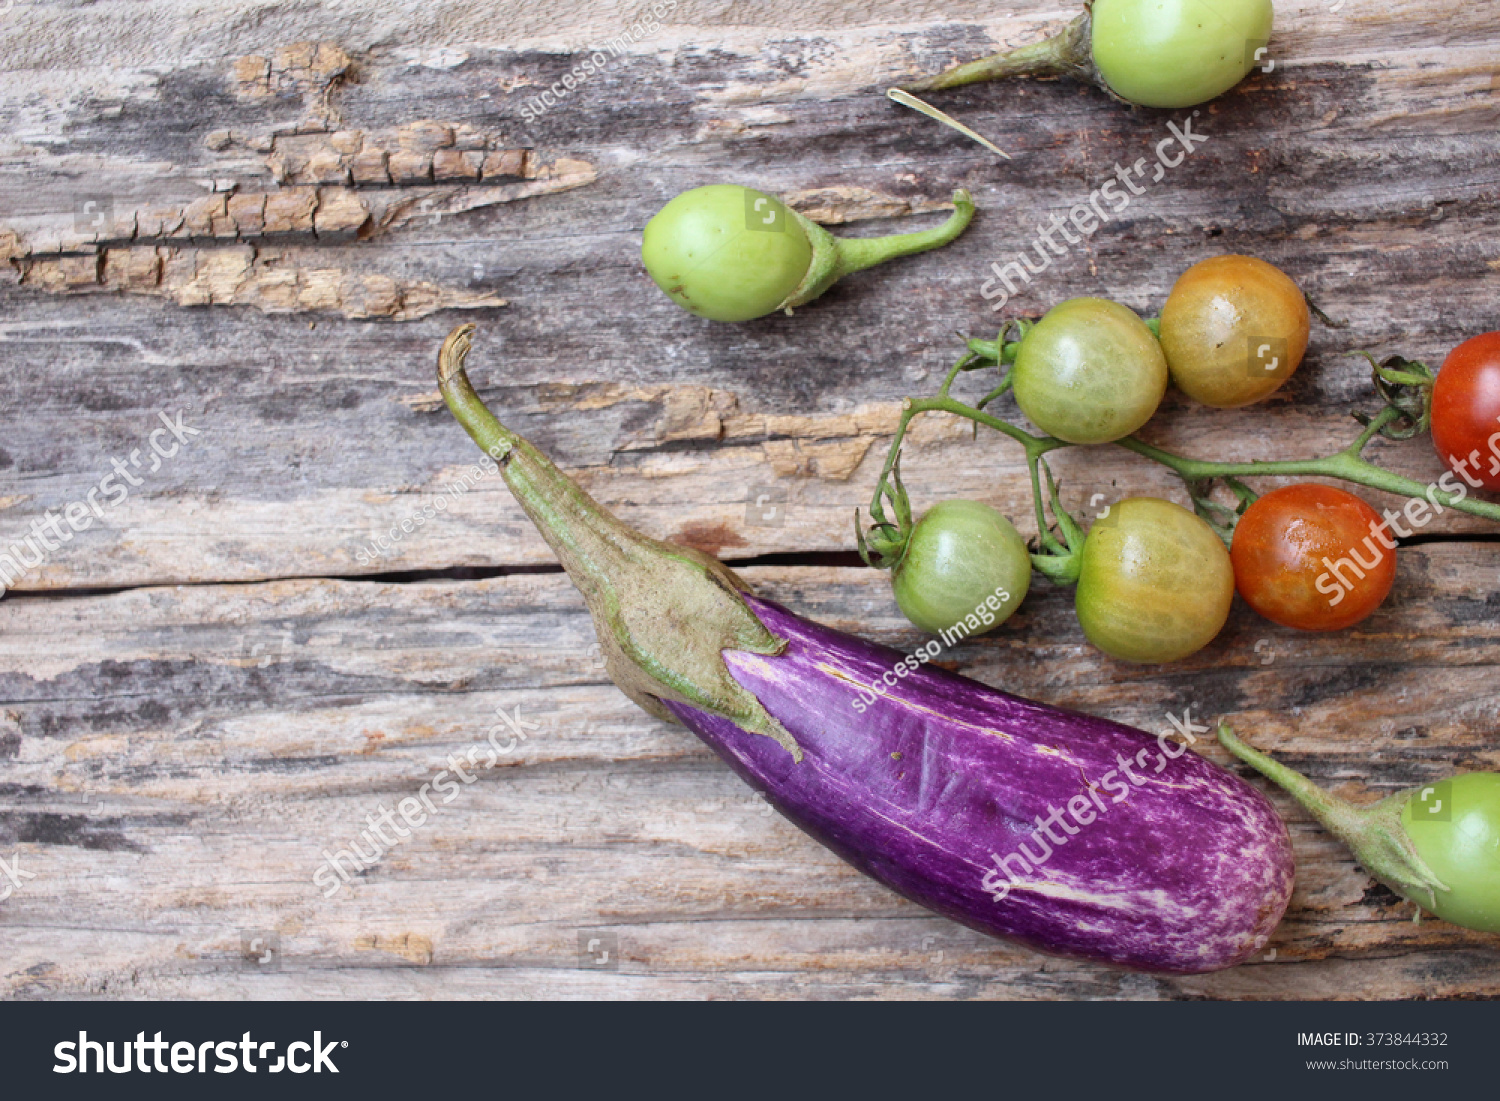 Mix of tomato with purple eggplants on the wood background